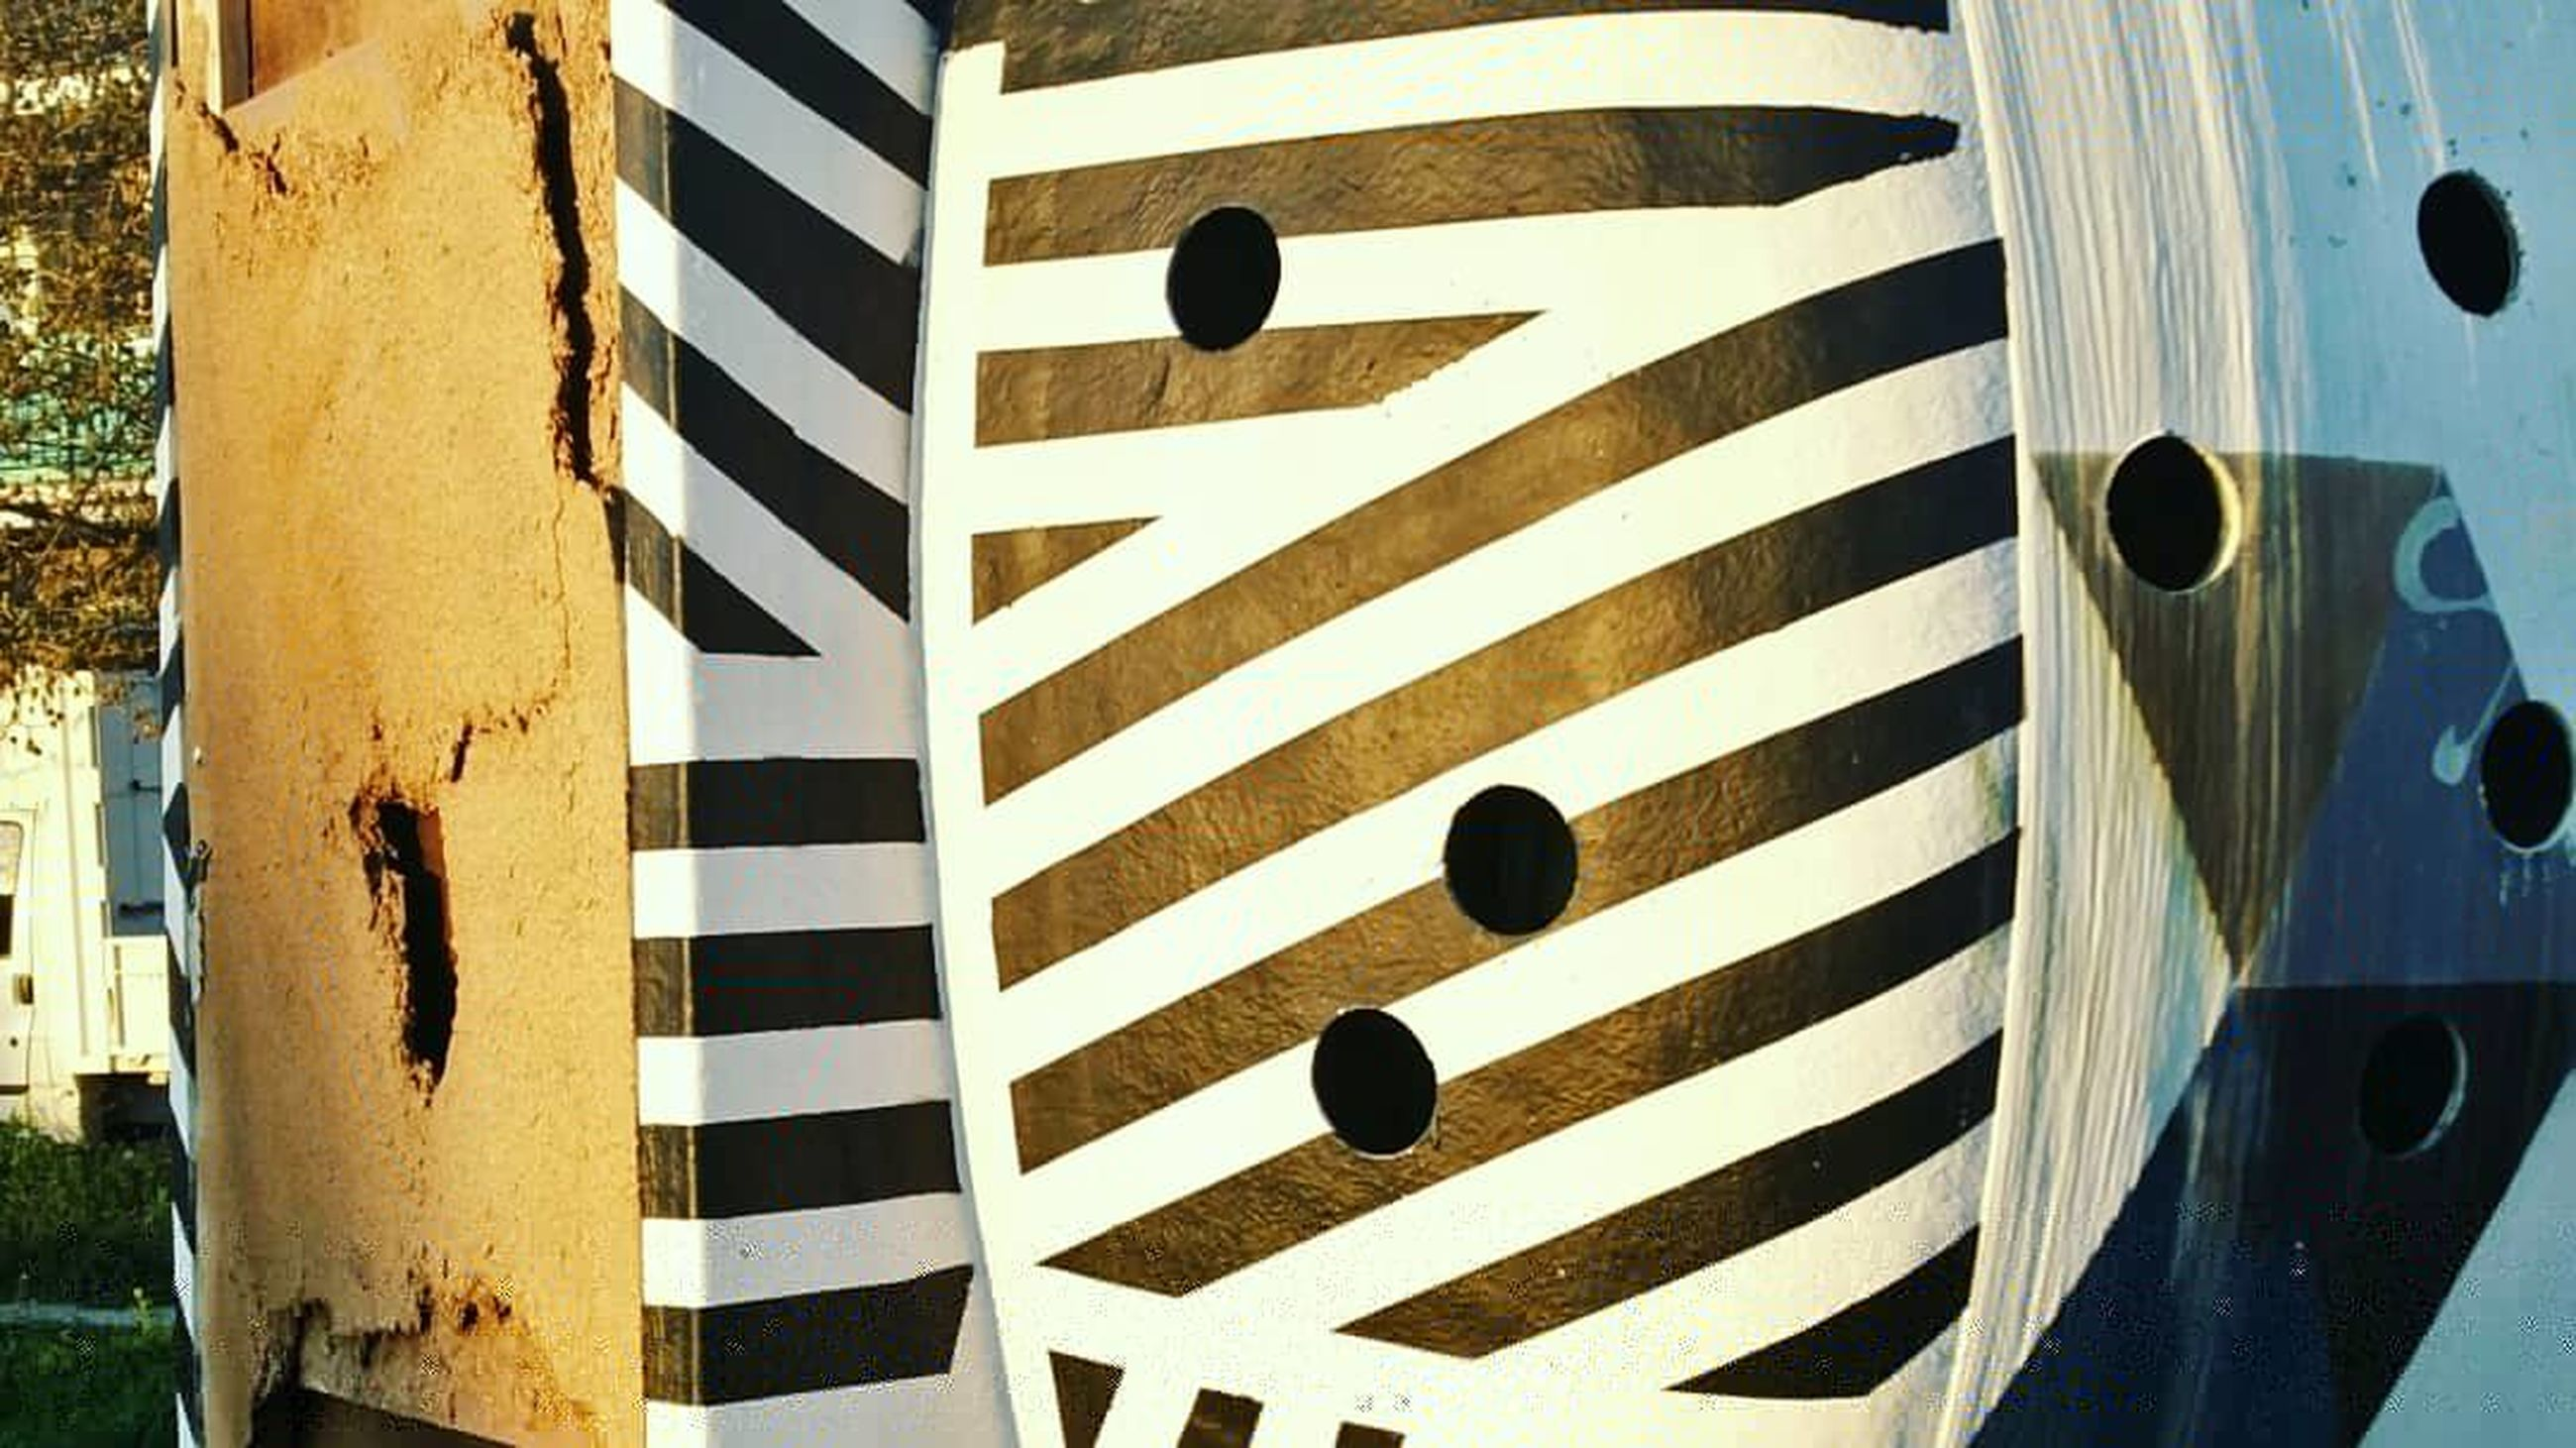 striped, no people, close-up, day, pattern, full frame, outdoors, backgrounds, black color, white color, wall - building feature, sign, shape, metal, security, communication, paint, architecture, abstract, detail